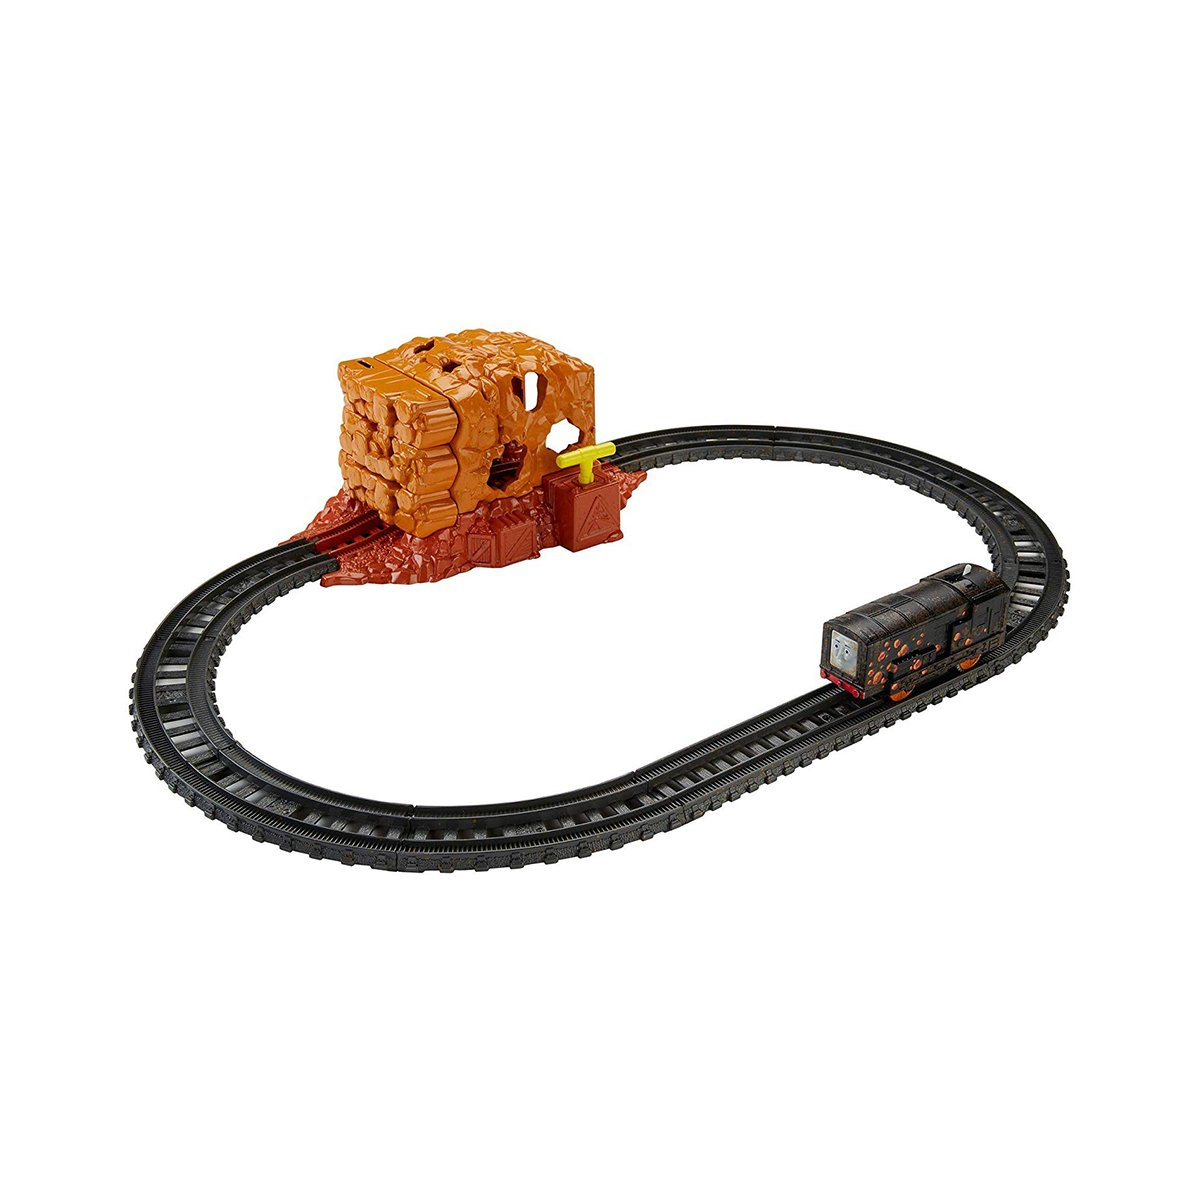 Set de joaca cu locomotiva motorizata, Thomas And Friends, Tunelul